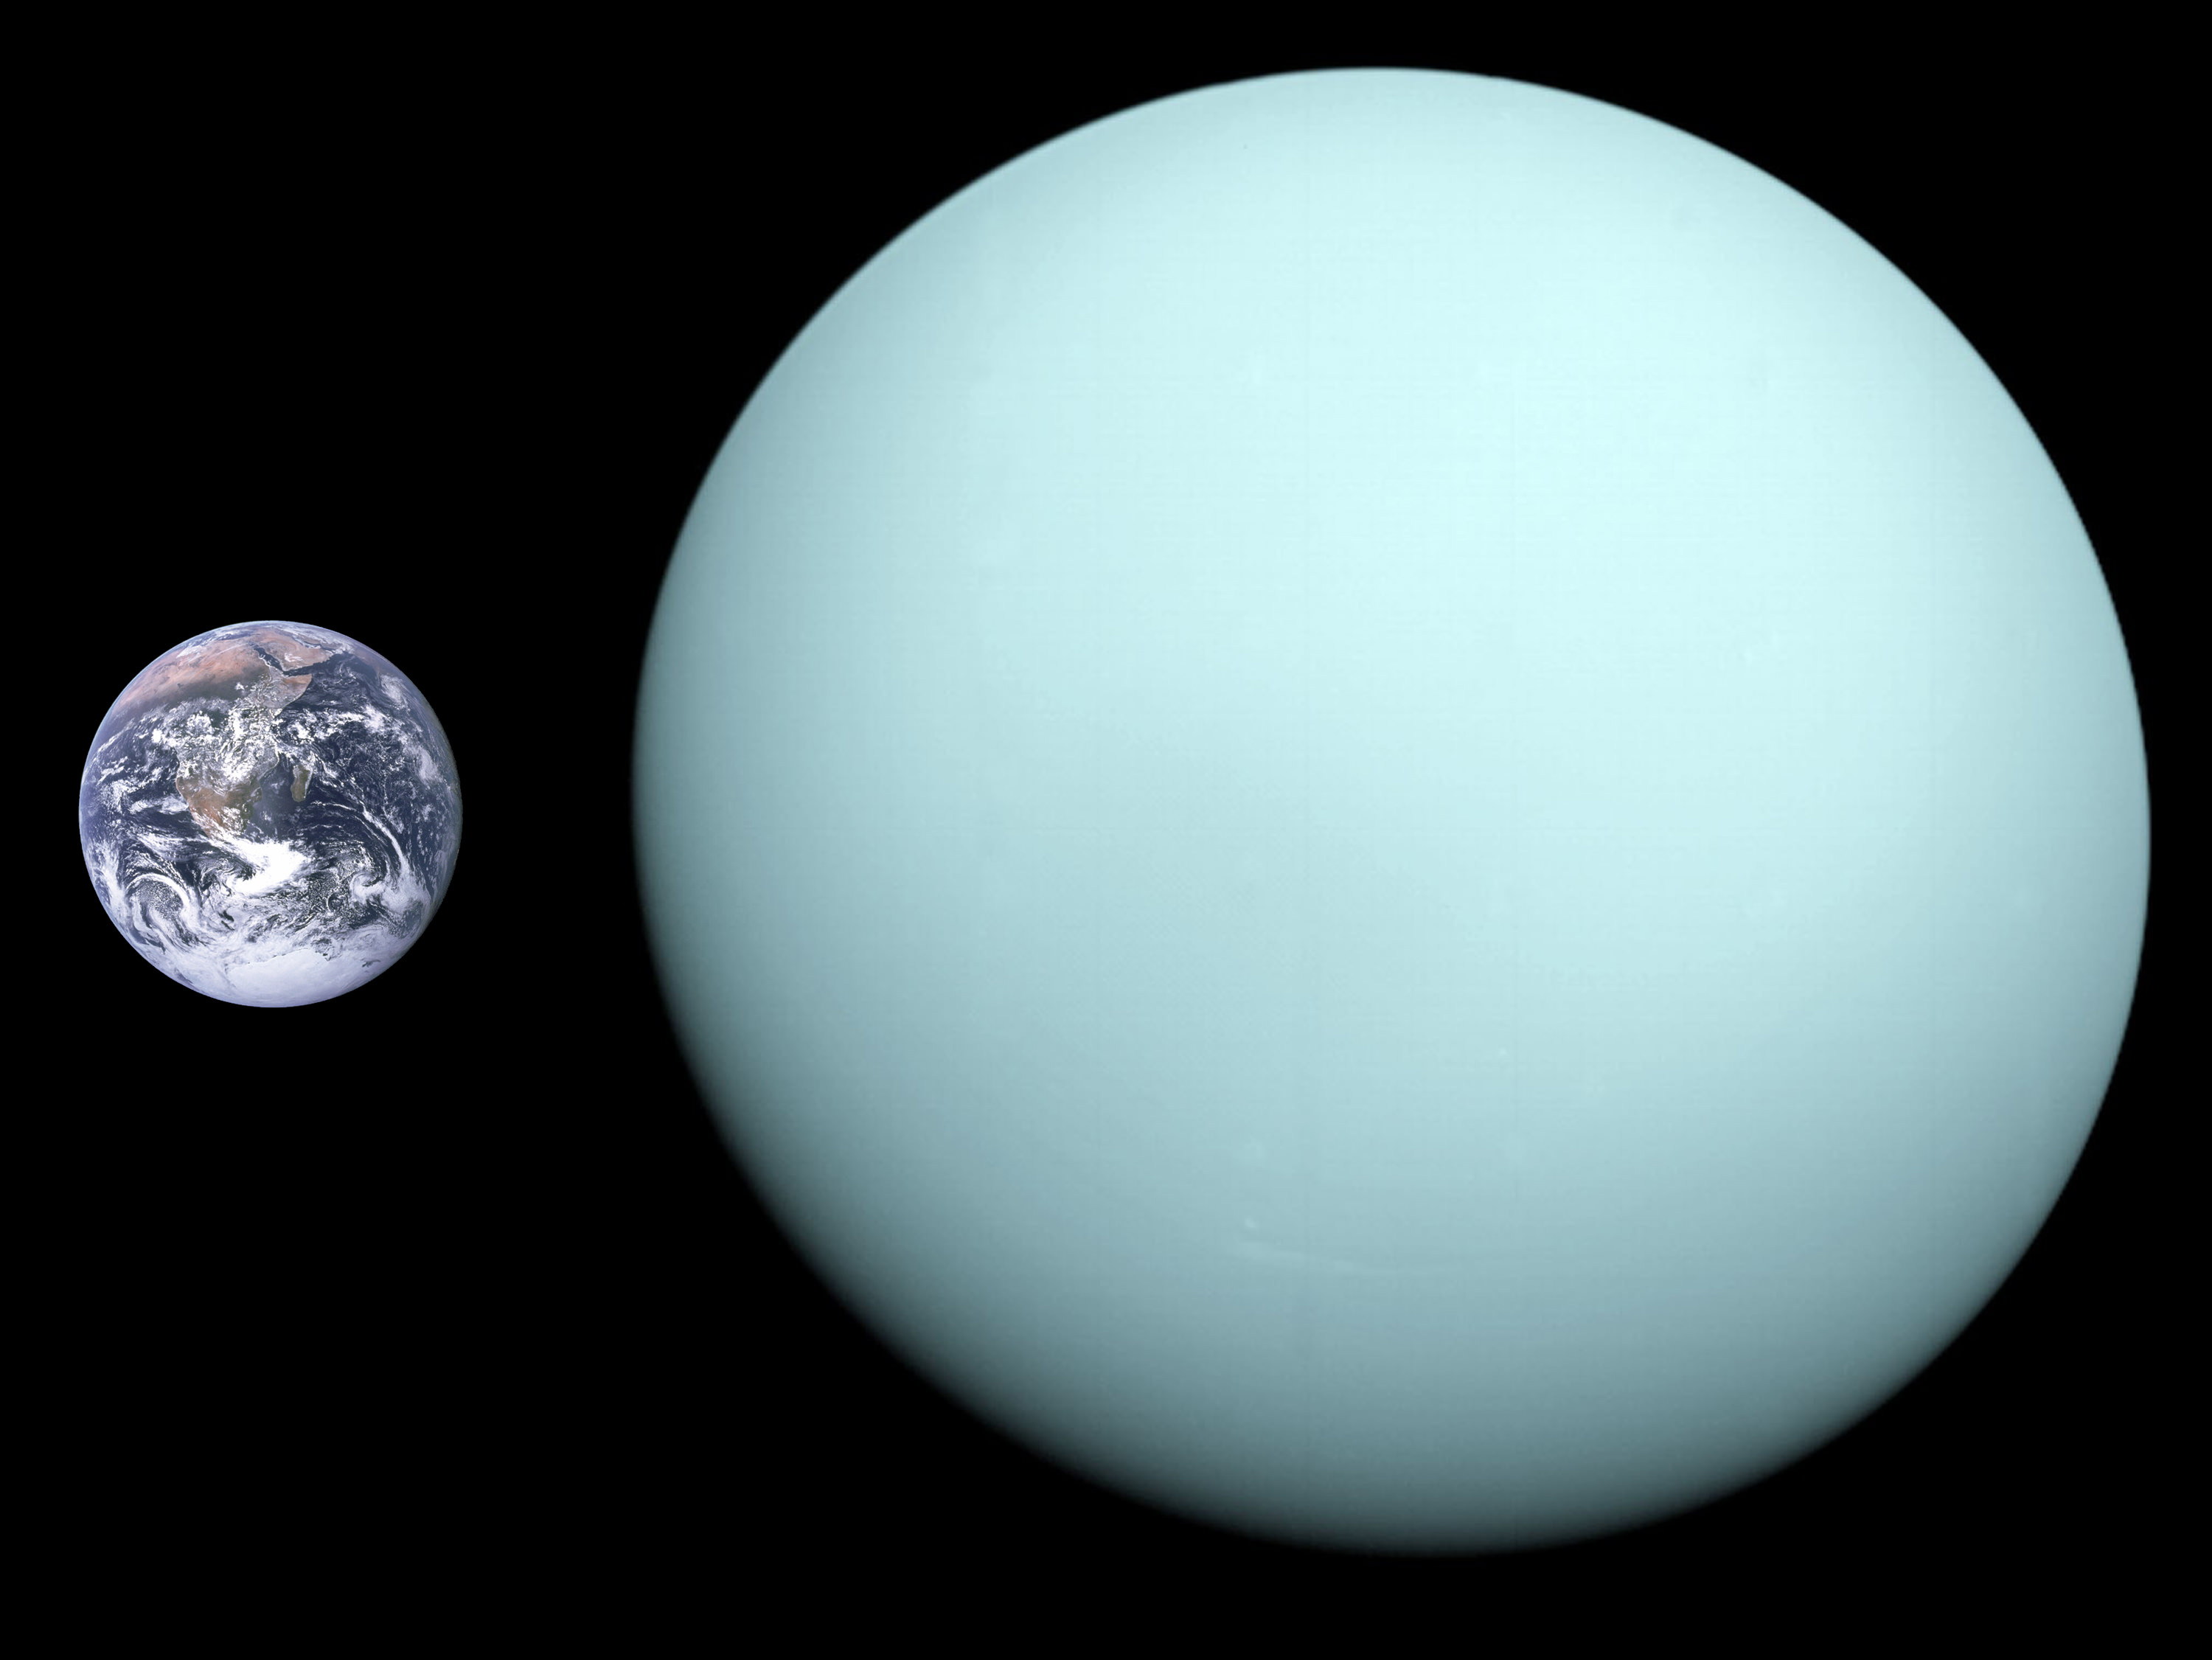 ' ' from the web at 'http://i1.wp.com/www.universetoday.com/wp-content/uploads/2012/03/uranus_size.jpg'